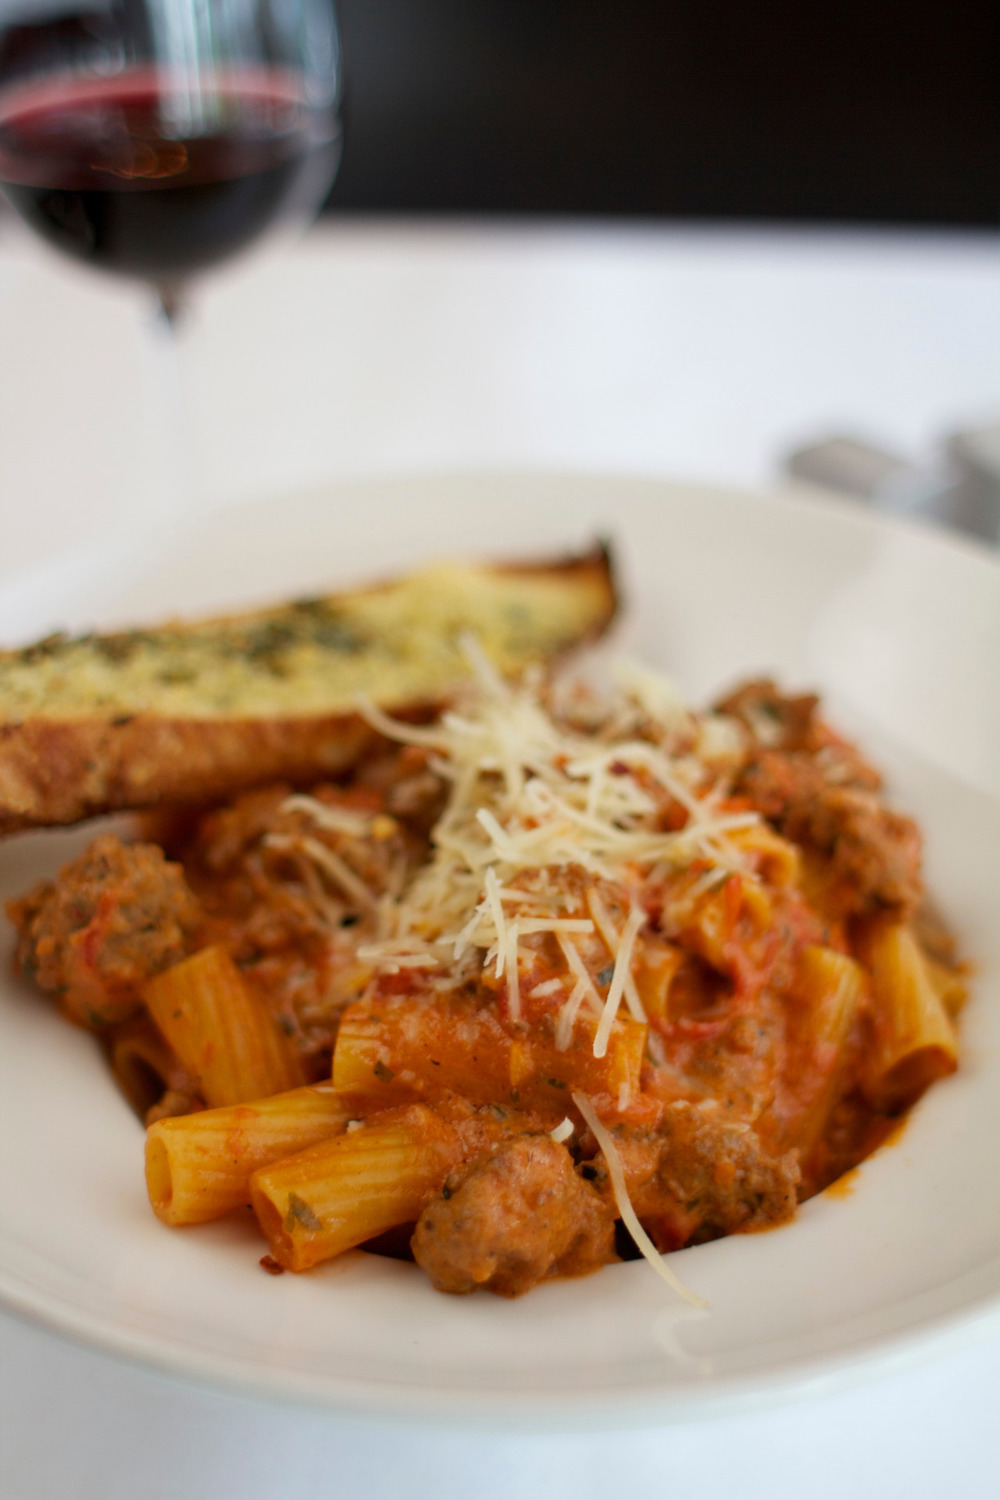 Palomino's Rigatoni Bolognese (serves 4-6) 1/2lb       Uli's Famous Hot Italian Sausage 1/4tsp     Crushed Red Chili Pepper Flakes 1lb           Crushed Pair Tomatoes in Juice 2tbsp       Minced Parsley 2tbsp       Minced Garlic 1/4cup     Roasted Red Peppers (julienned) 2tsp         Dried Oregano 1cup        Heavy Cream 1 1/4lb     Rigatoni (cooked) Salt and Pepper to taste 1.  Brown Uli's Famous Hot Italian Sausage in a large pan over medium heat.  Add tomatoes, garlic, chili pepper, red peppers, parsley, and oregano.  Simmer uncovered for 20 minutes until slightly thickened. 2.  Add heavy and bring to a simmer.  Add cooked pasta and simmer to coat the noodles.  Top with grated parmesan and minced parsley.  3.  Enjoy with your friends and family.  For those who need to do a little less spice try Uli's Famous Mild Italian Sausage.